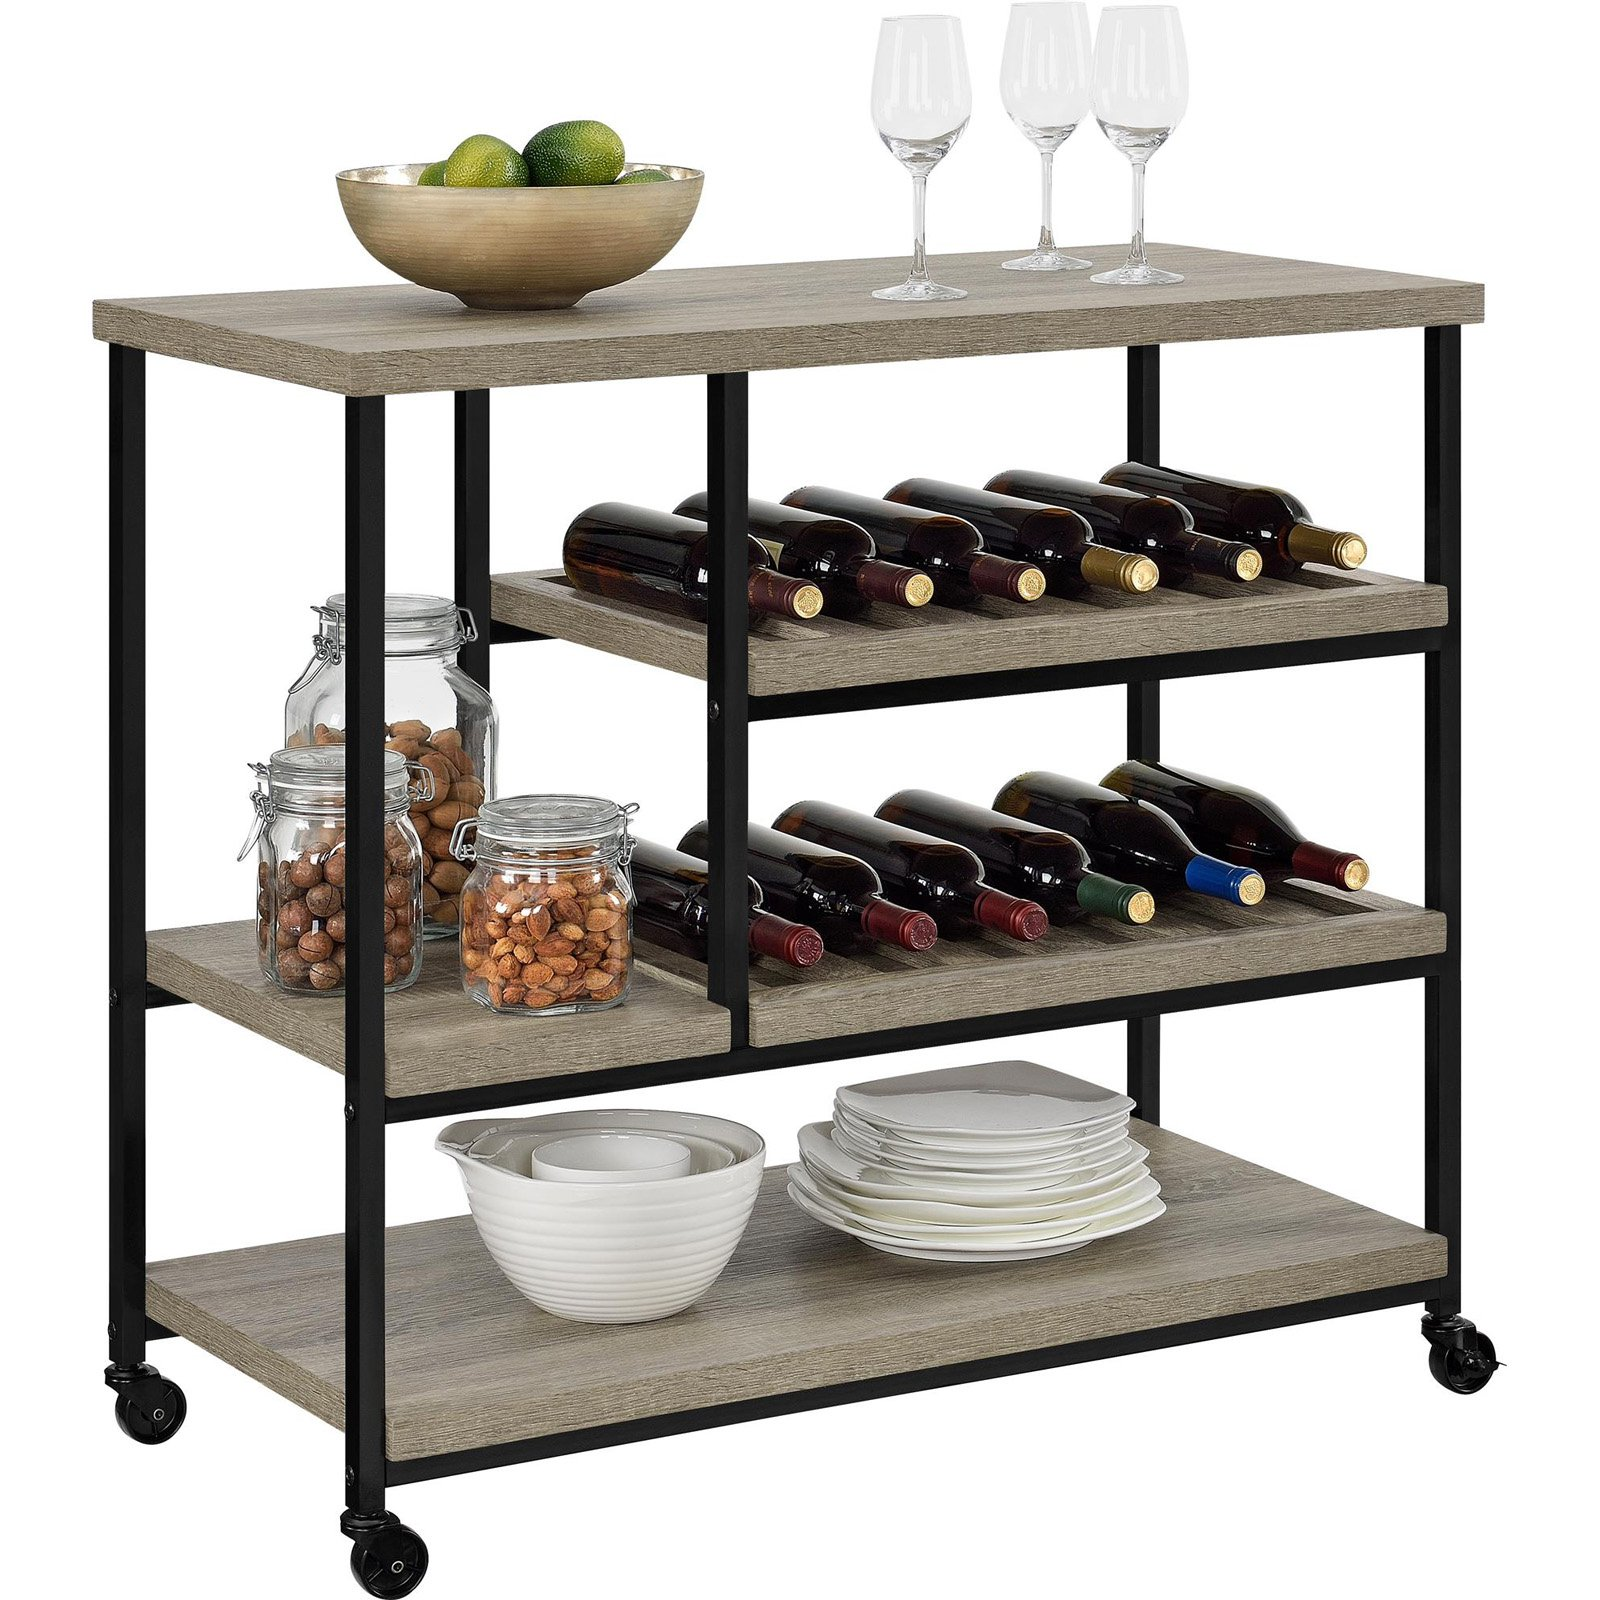 Elmwood Multi-Purpose Kitchen Cart, Sonoma Oak